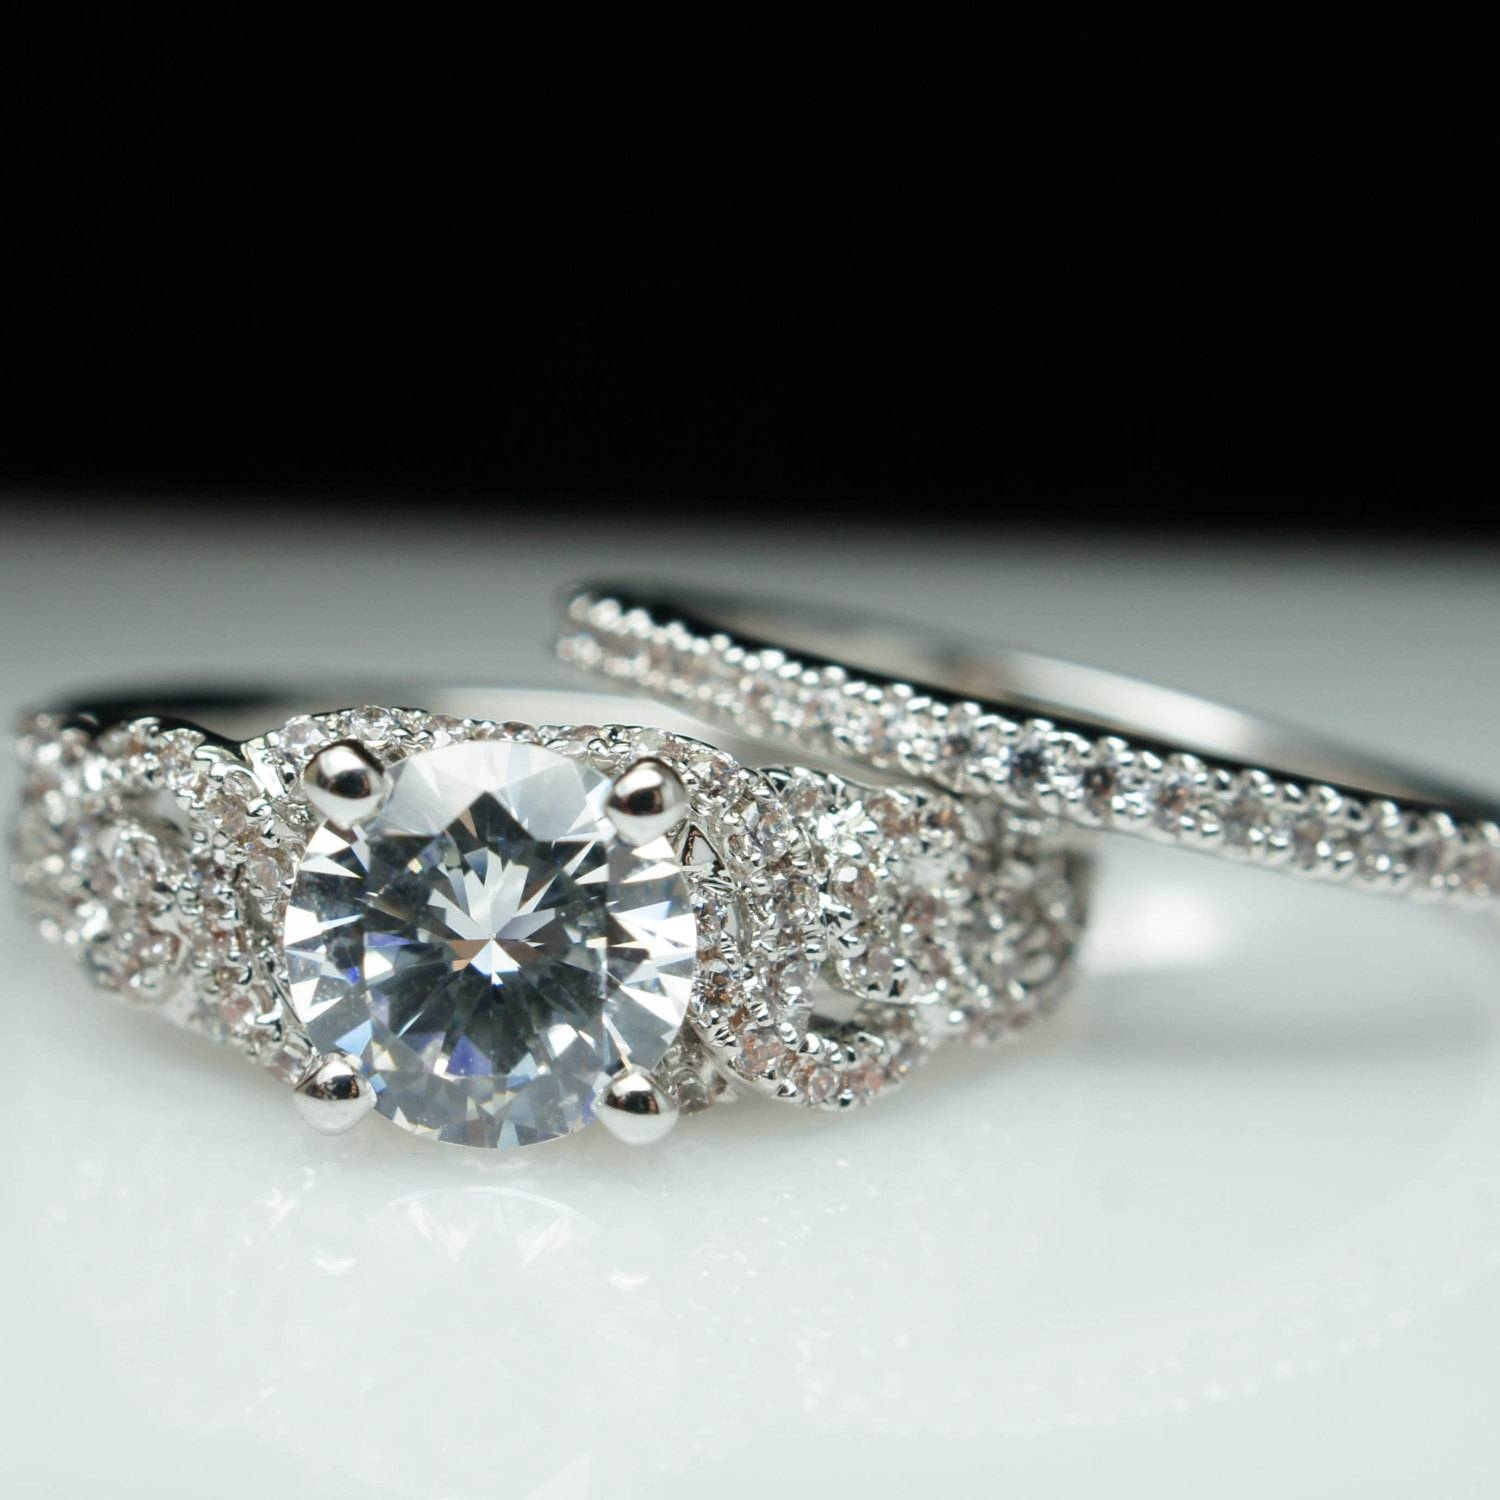 Diamond Engagement Ring & Matching Wedding Band Set Solitaire Intended For Intricate Band Engagement Rings (View 4 of 15)